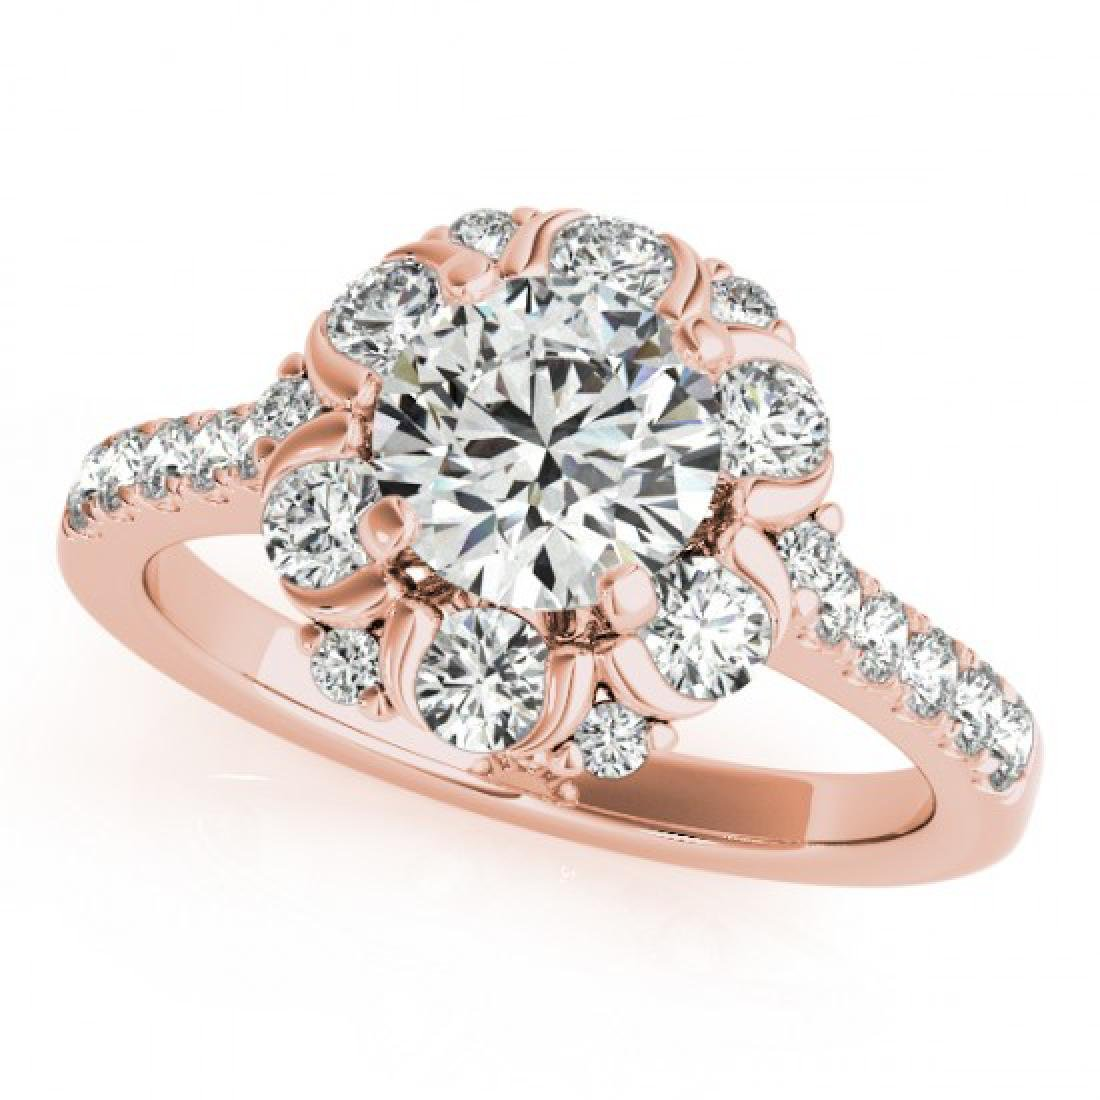 2.05 CTW Certified VS/SI Diamond Solitaire Halo Ring